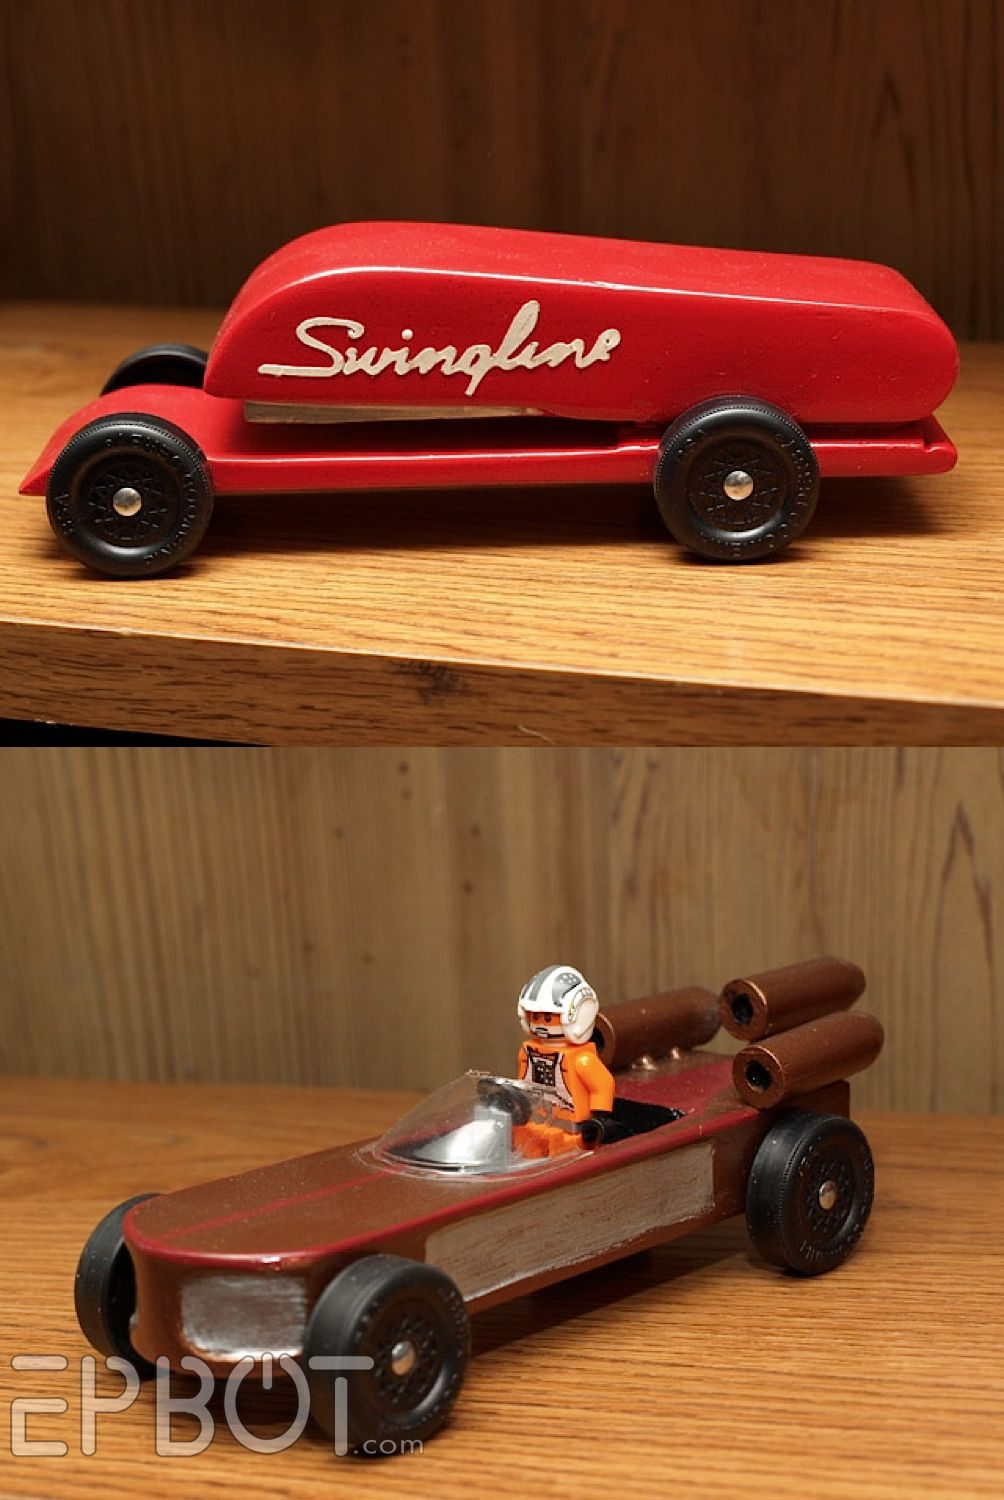 Geeky pine wood derby cars geek love pinterest derby cars pinewood derby and pinewood for Unique pinewood derby car